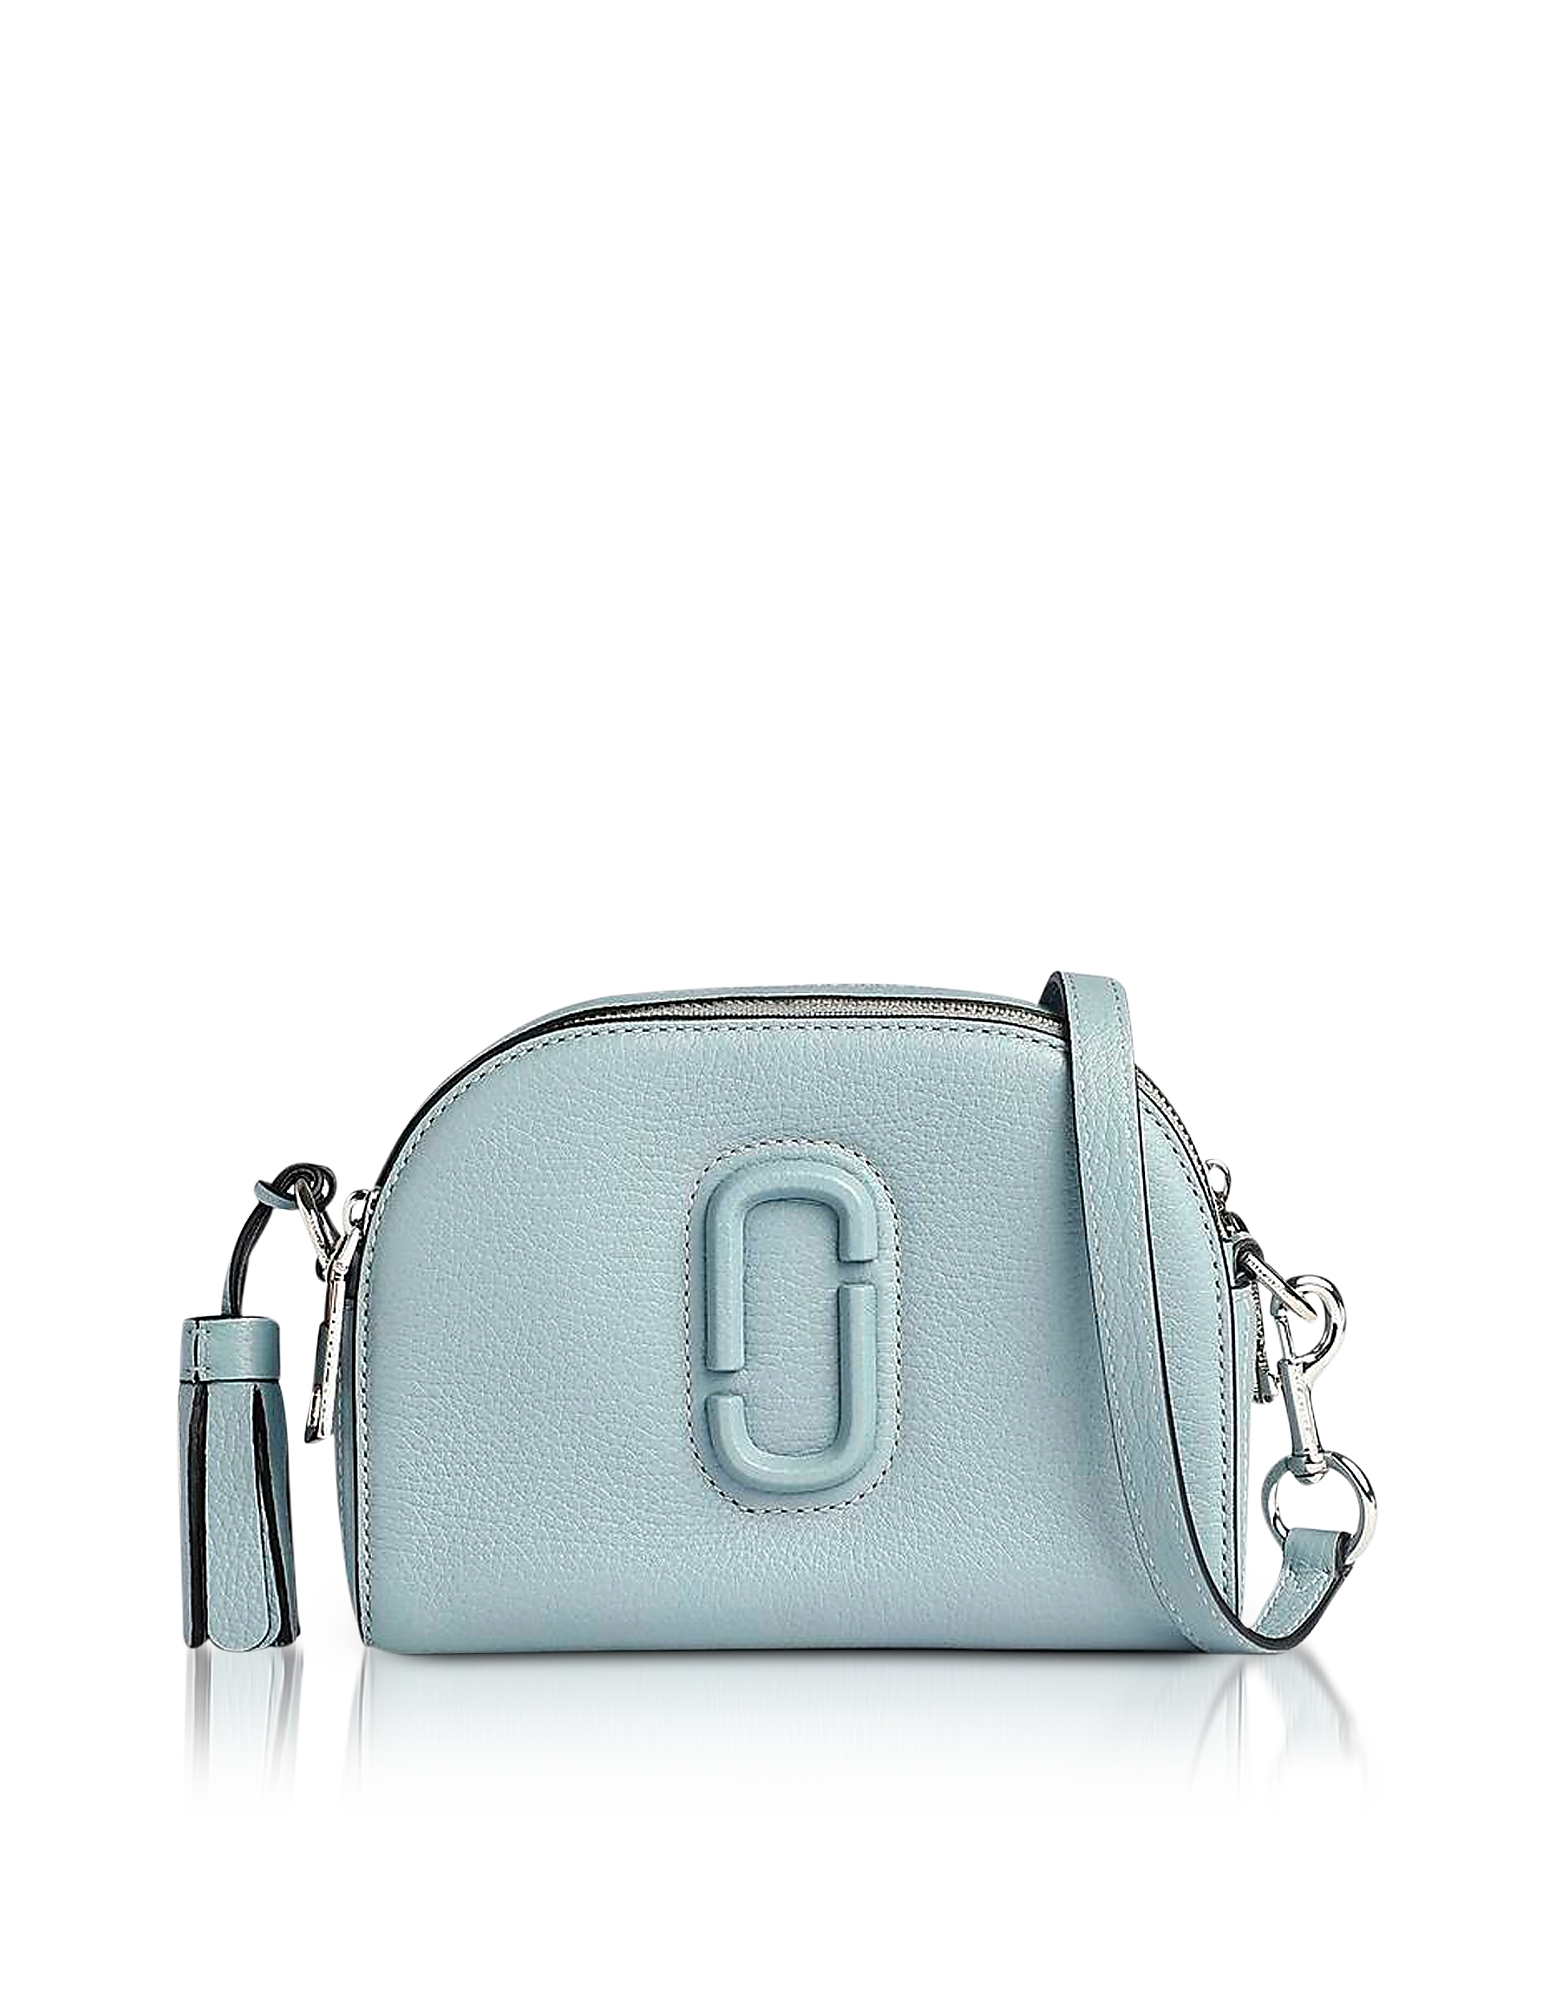 Marc Jacobs Handbags, Shutter Leather Small Camera Bag